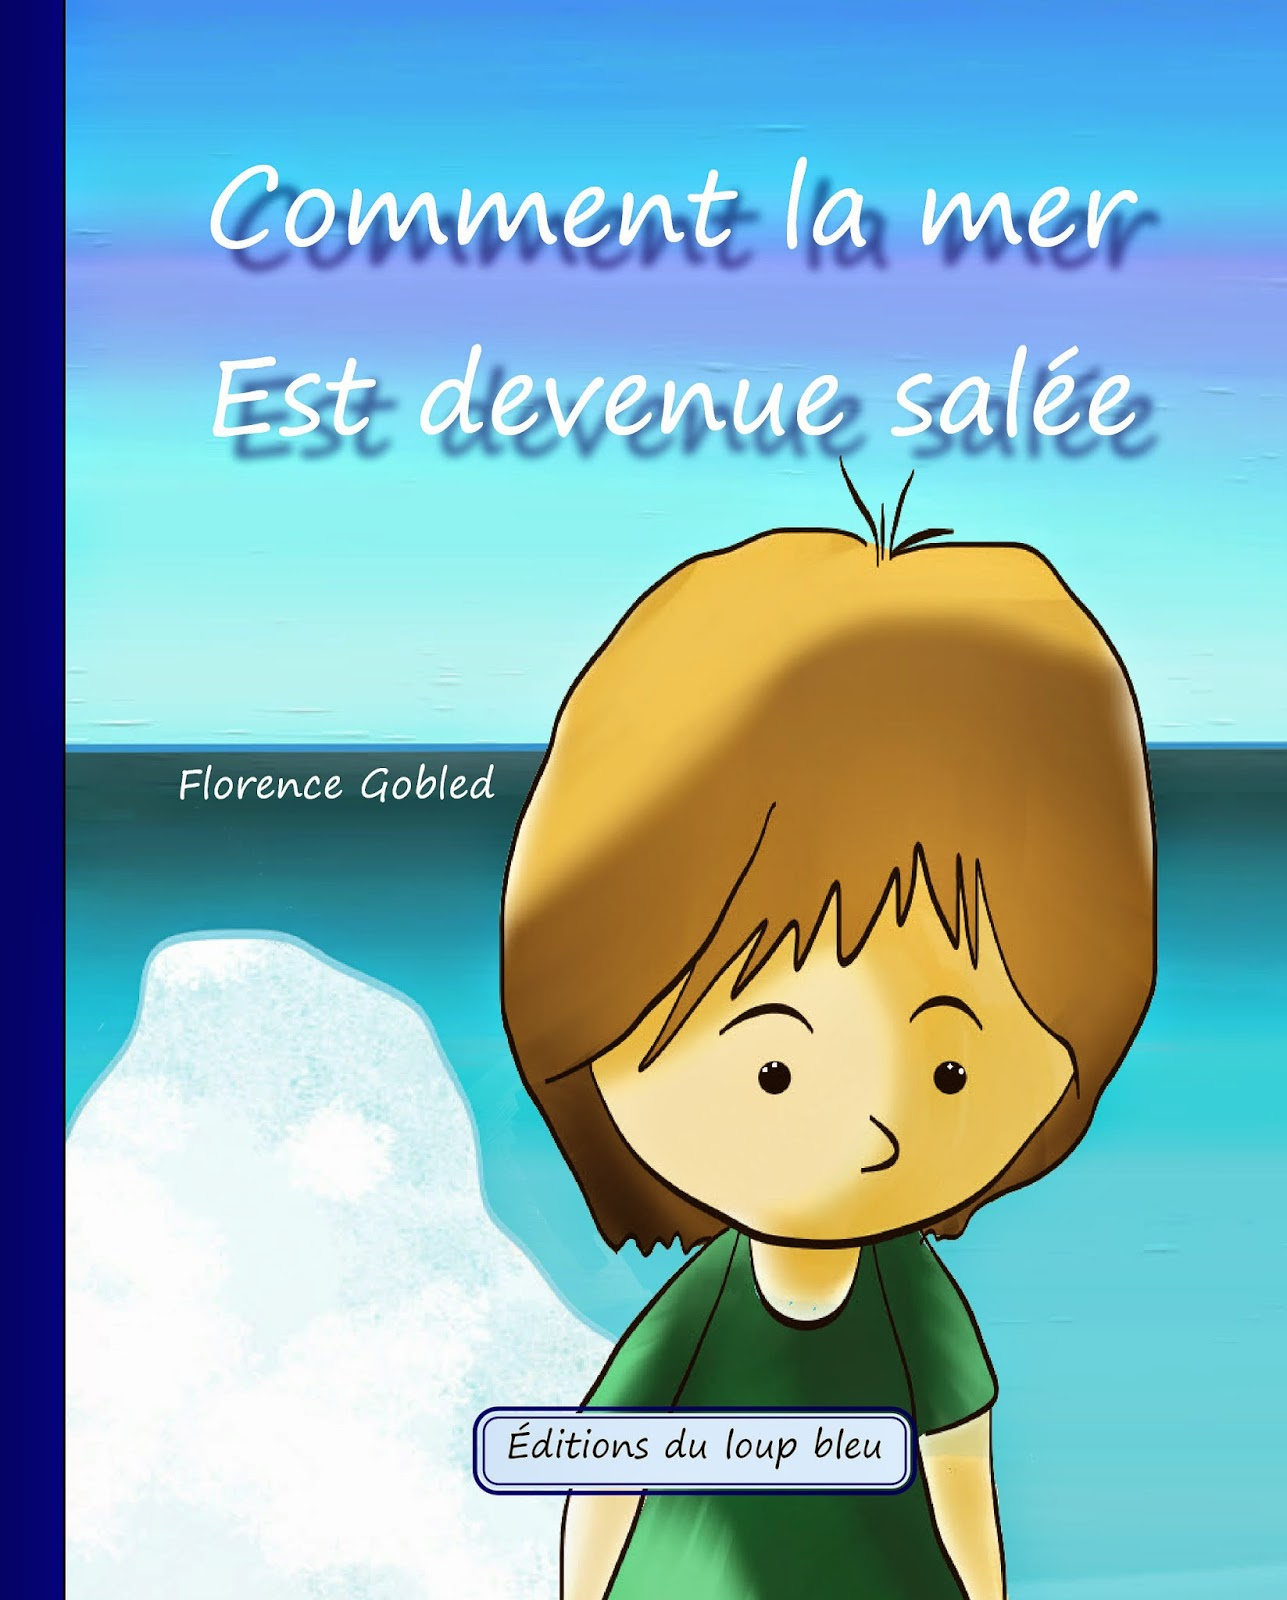 http://www.amazon.fr/Comment-mer-est-devenue-sal%C3%A9e/dp/B00L5J65JK/ref=sr_1_1?ie=UTF8&qid=1404118960&sr=8-1&keywords=comment+la+mer+est+devenue+sal%C3%A9e